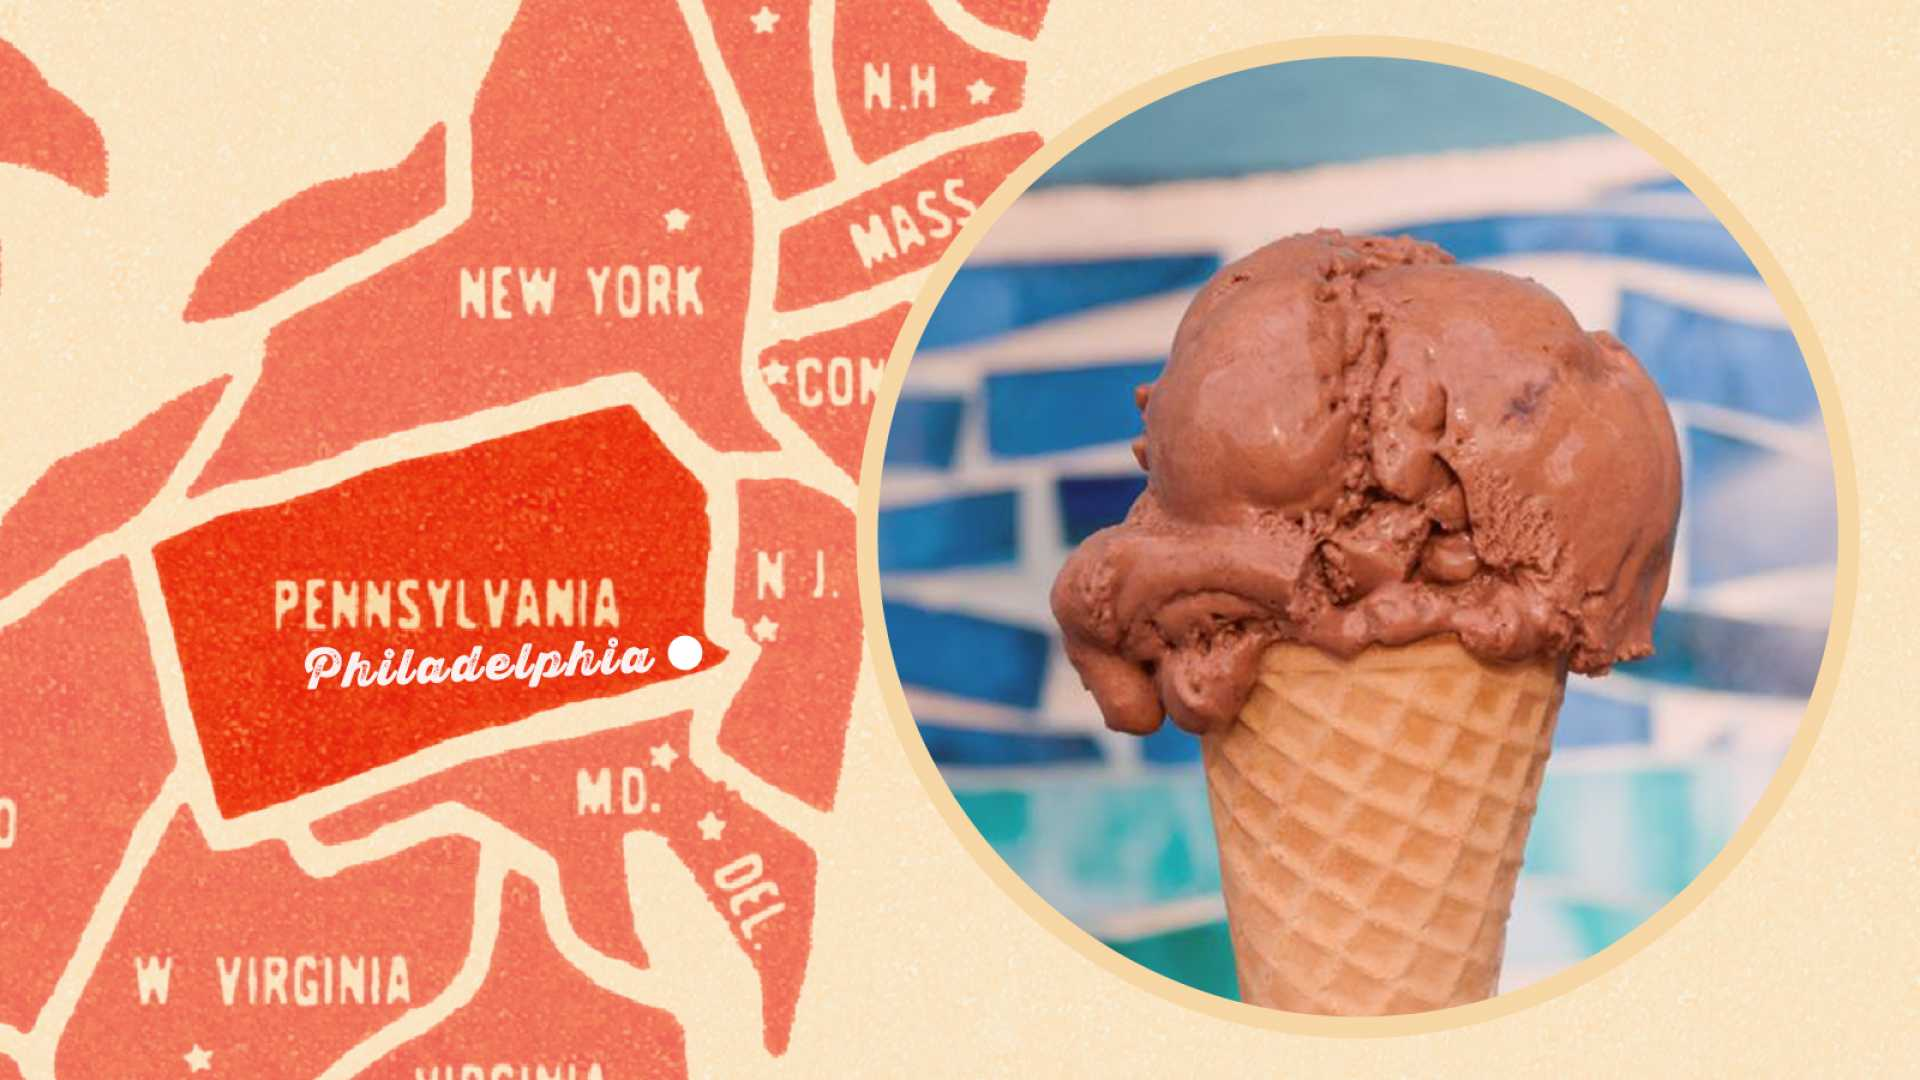 This Philadelphia Ice Cream Business Is Serving Up a Double Scoop of Weird